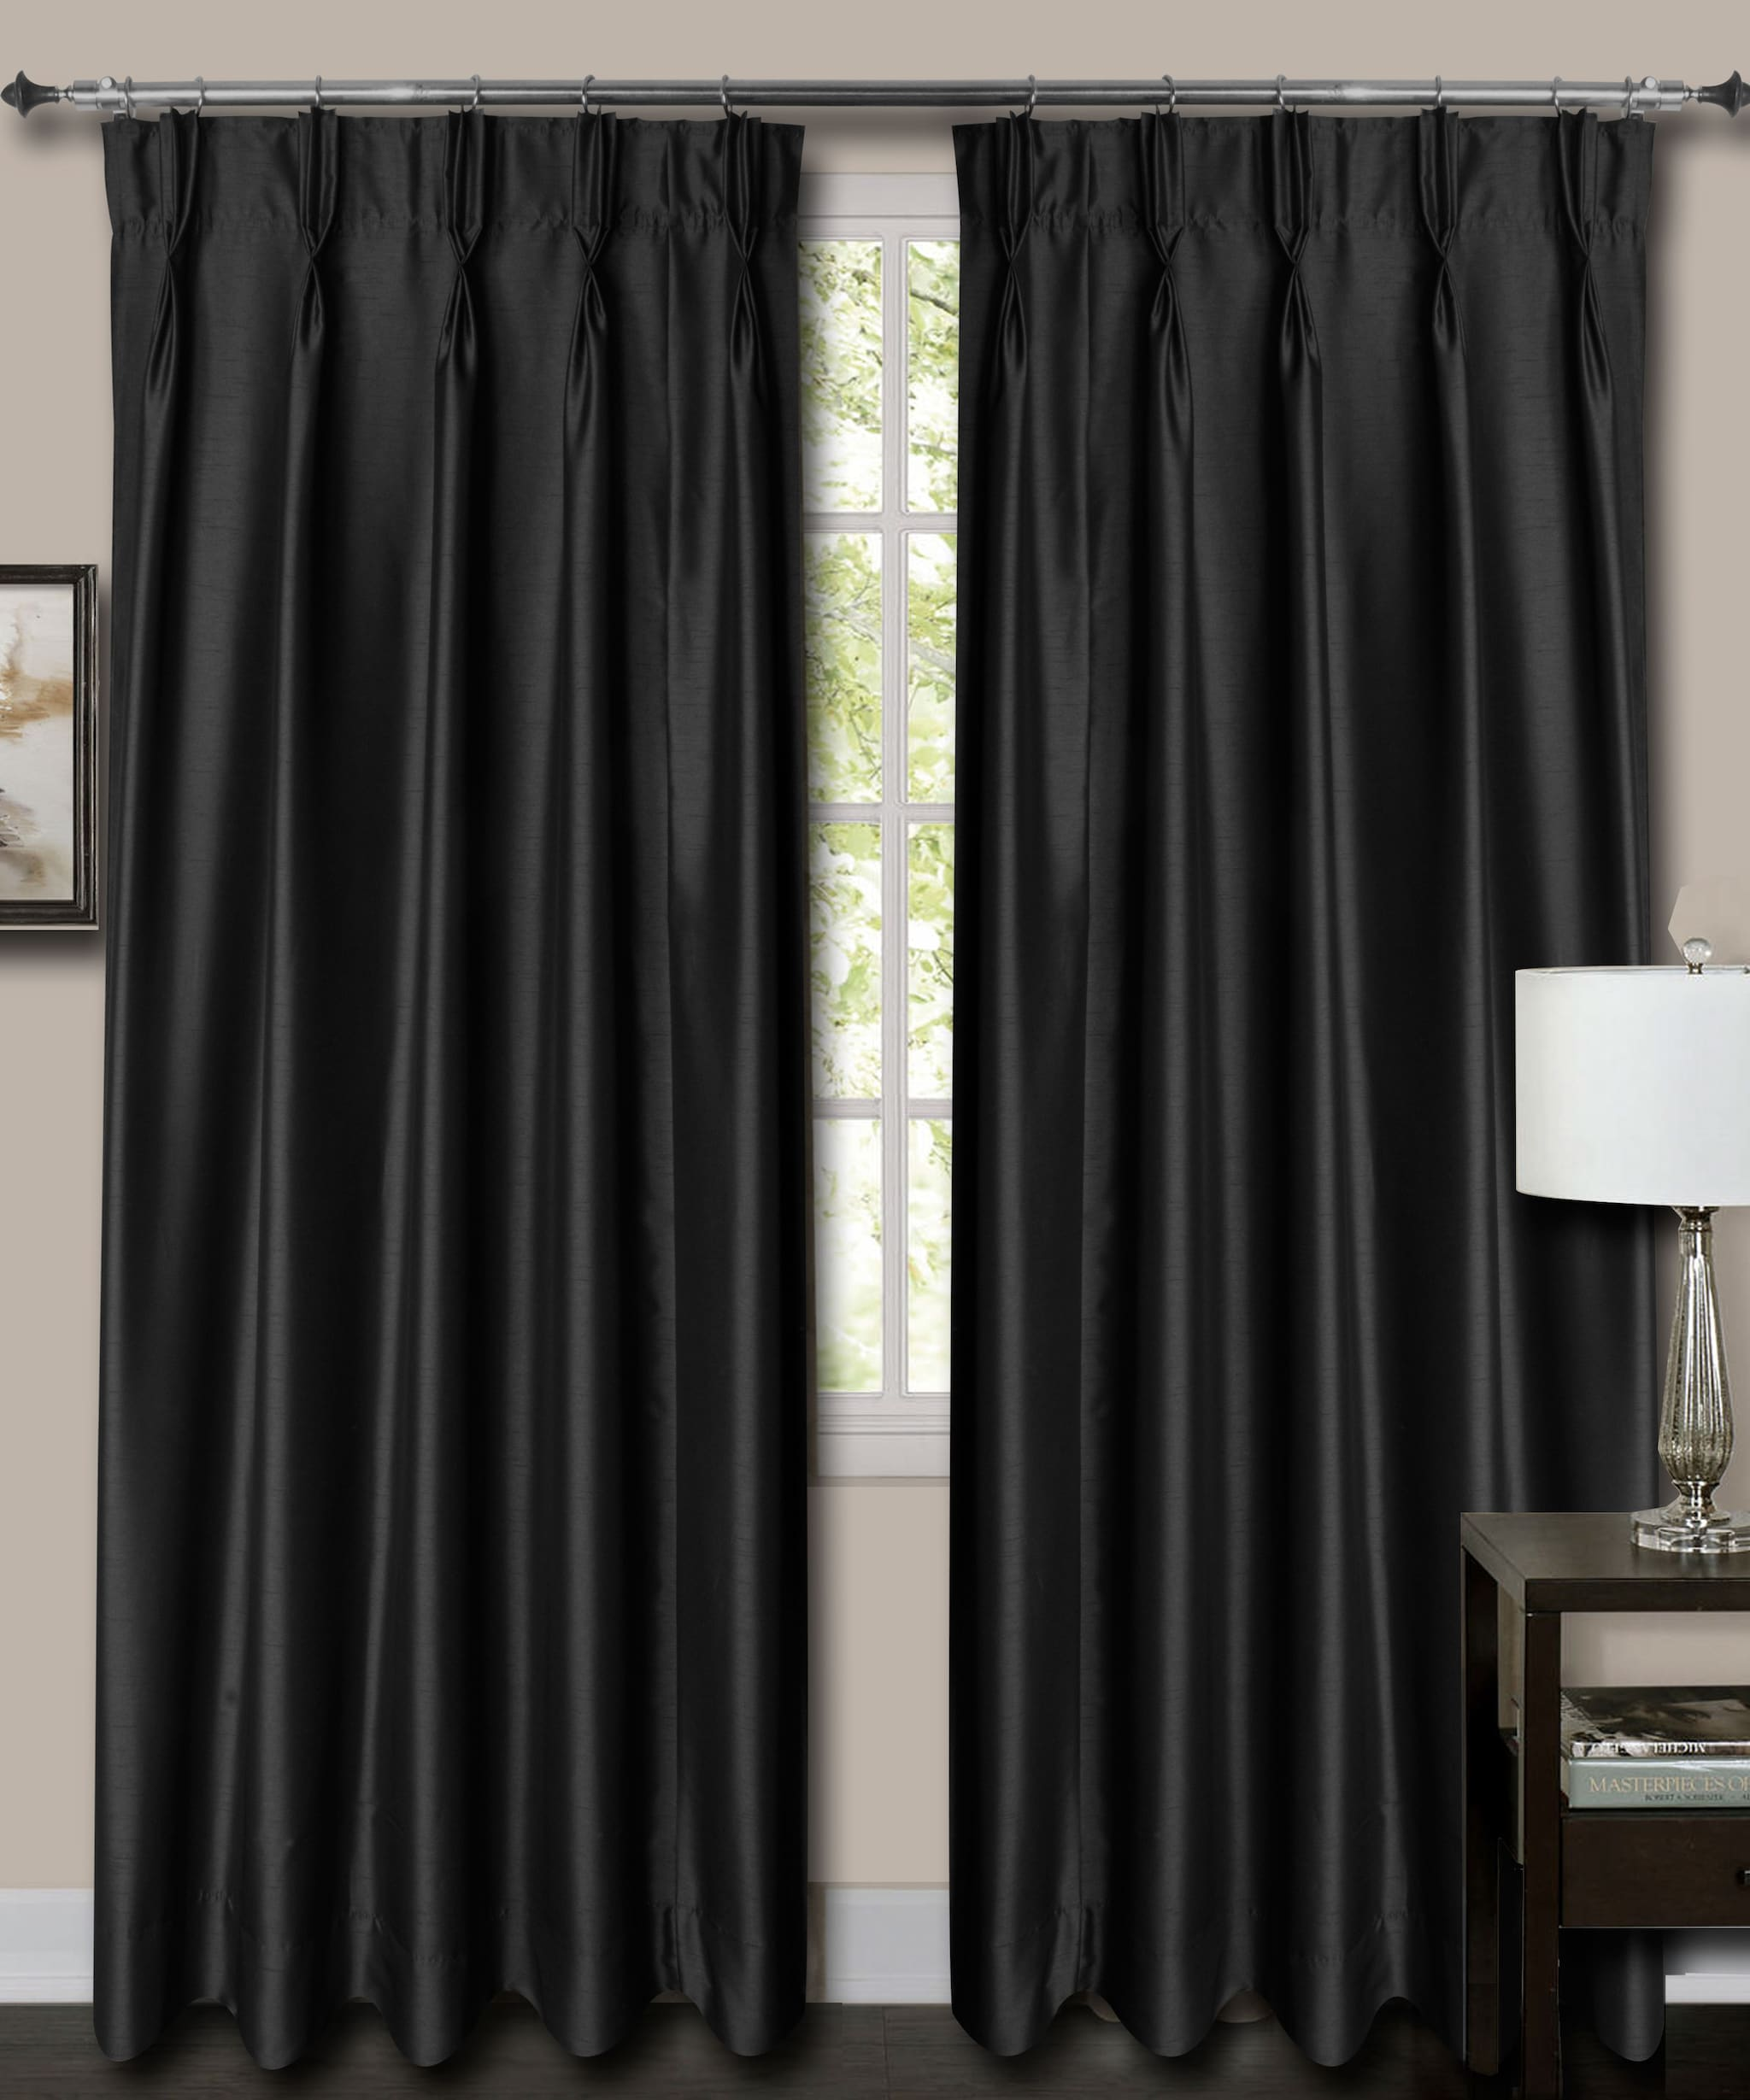 "French Pleat Top Black Faux Silk Dupioni Curtains. (24"" Wide,14 Feet Long,Thick Lining)"